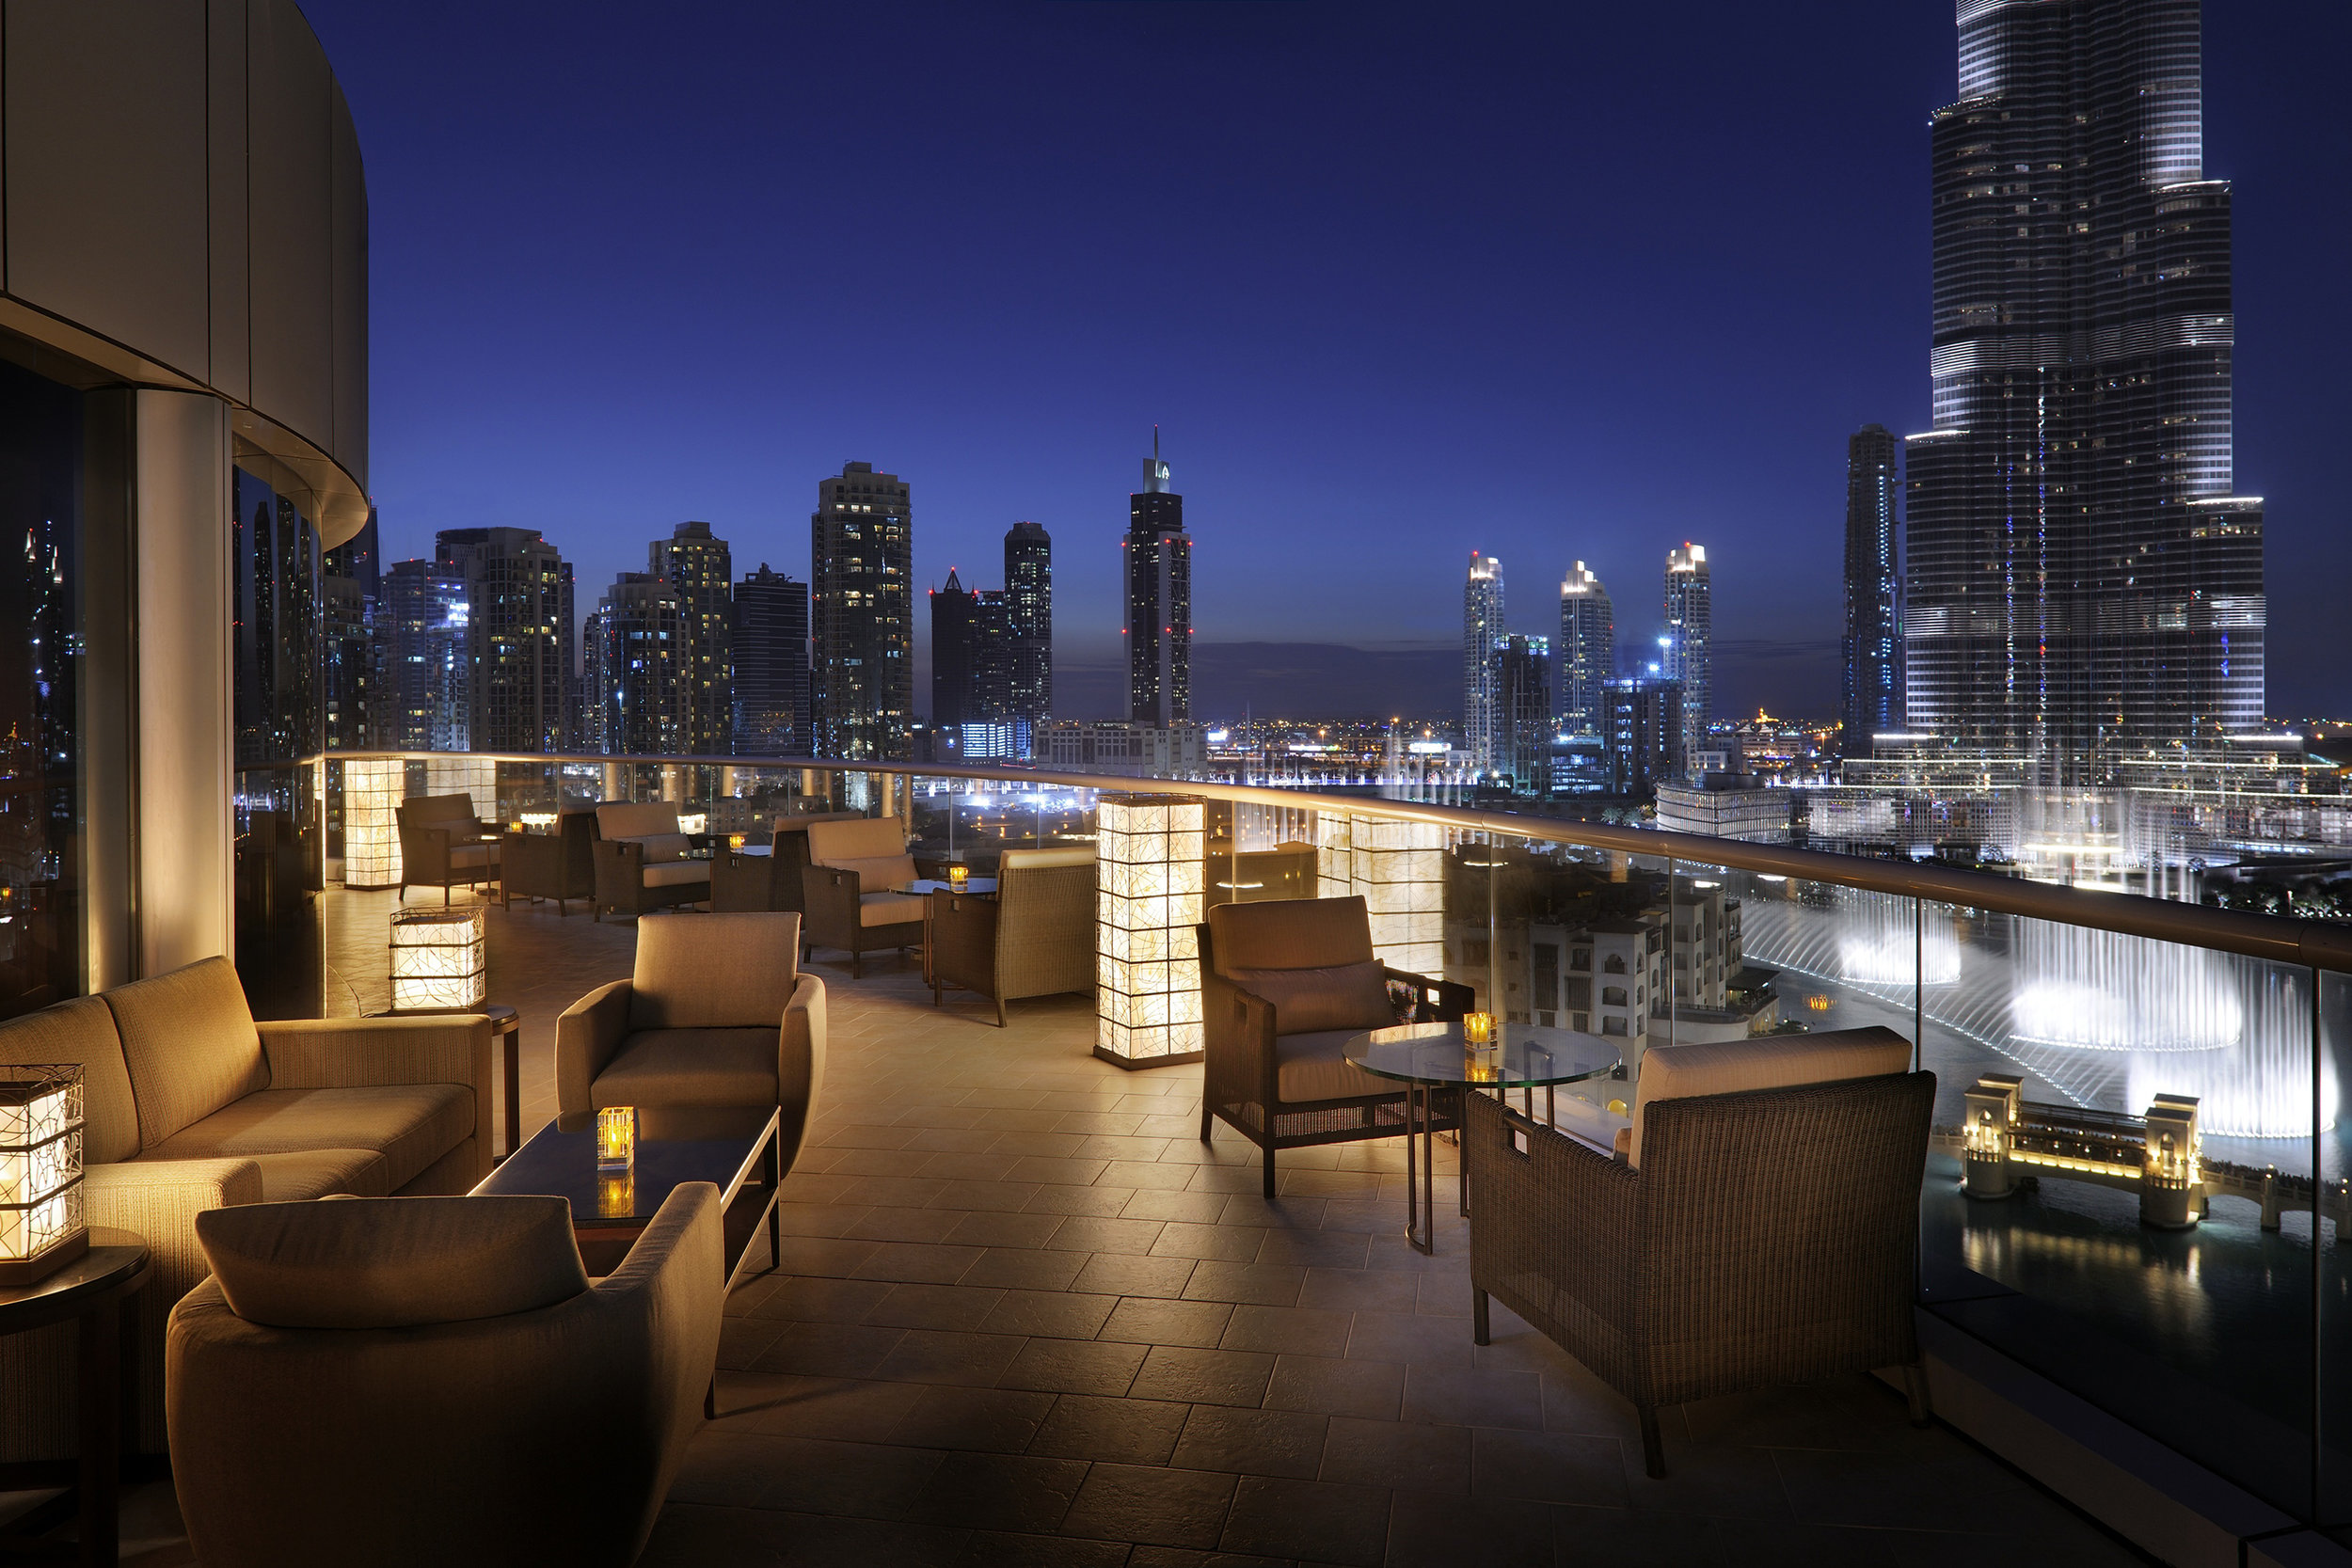 The-Address-Downtown-Dubai-Cigar-Lounge-Terrace (2).jpg